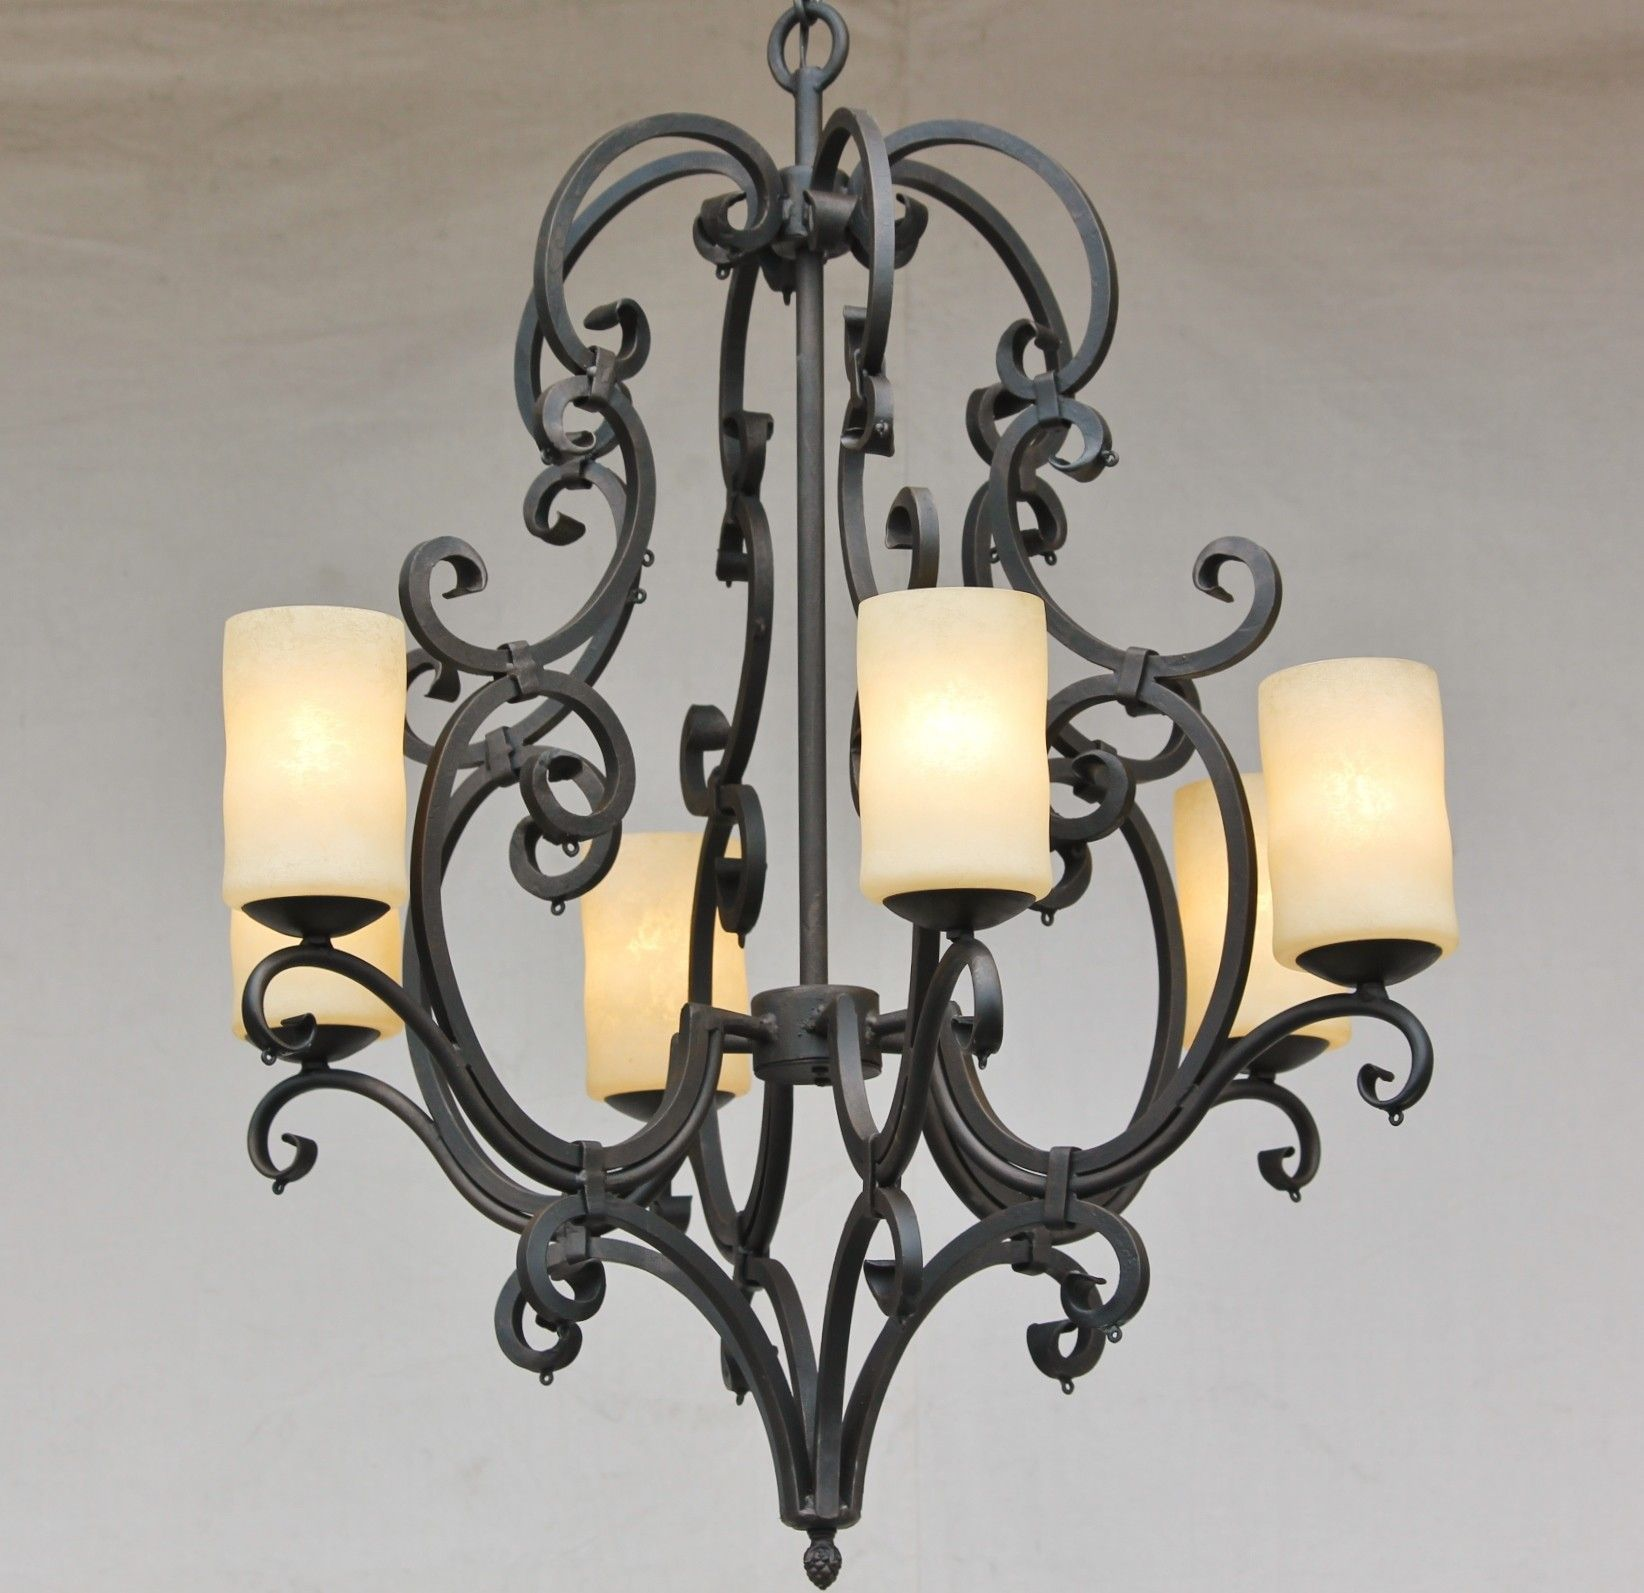 and with coffee roof rock table chandeliers kithcen breathtaking in astounding room cahndelier candle style for tuscan wall astonishing sofa black chandelier bronze world fireplace old iron living